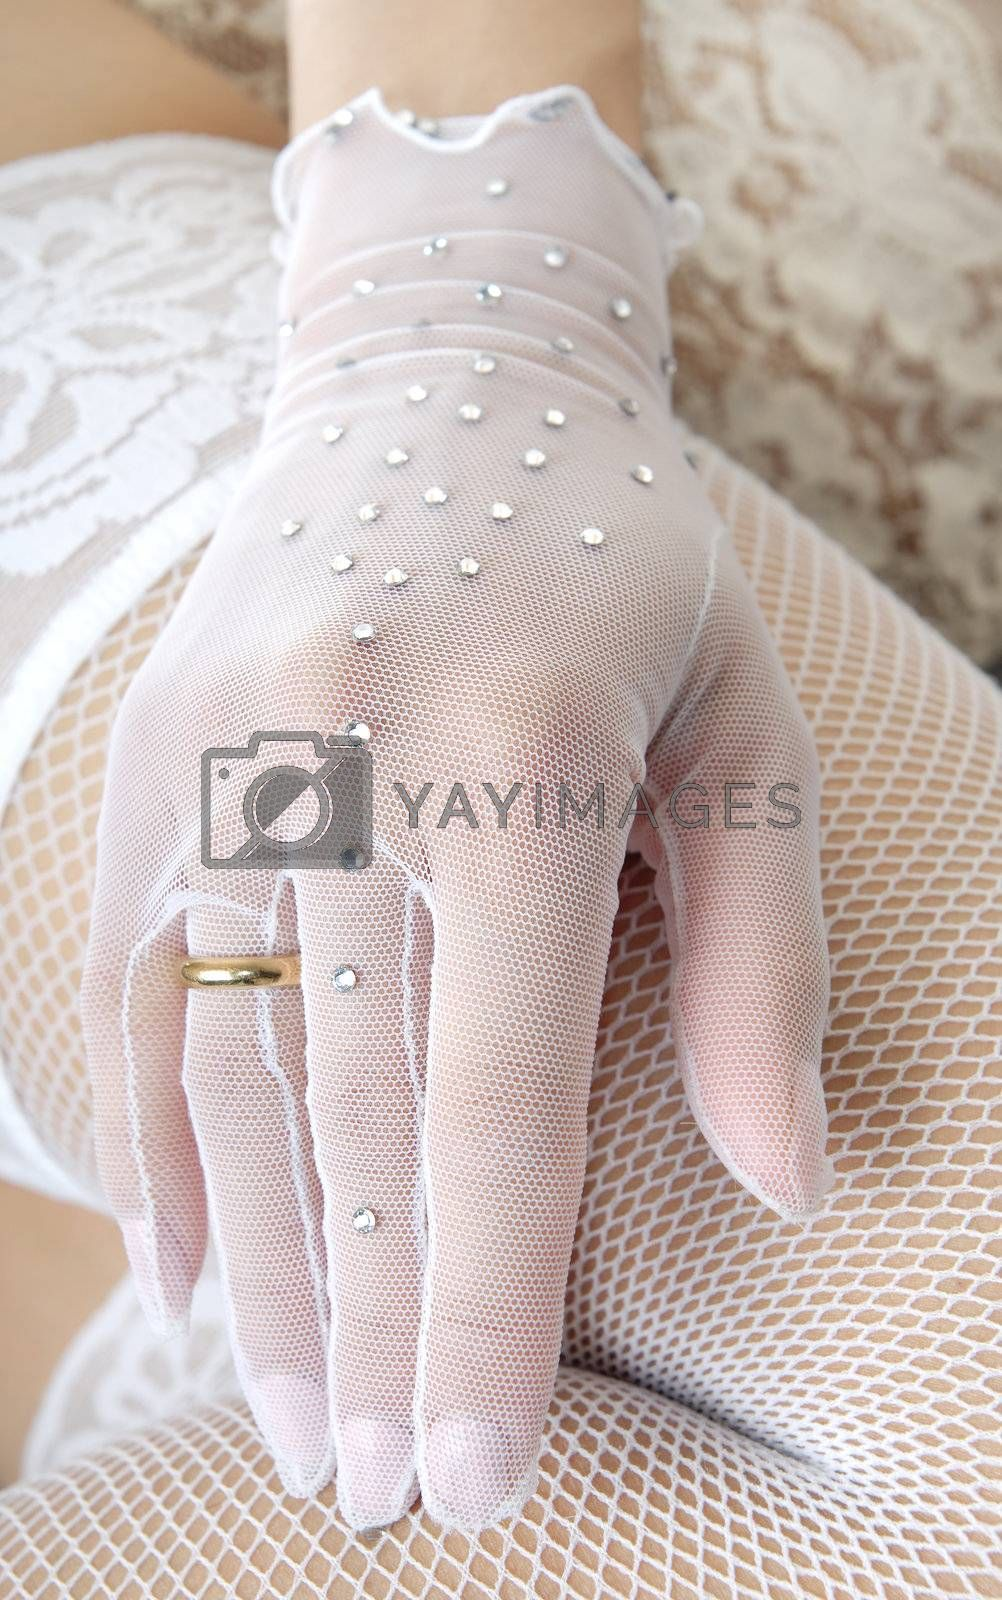 Close-up photo of the elegant hand in glove with wedding ring